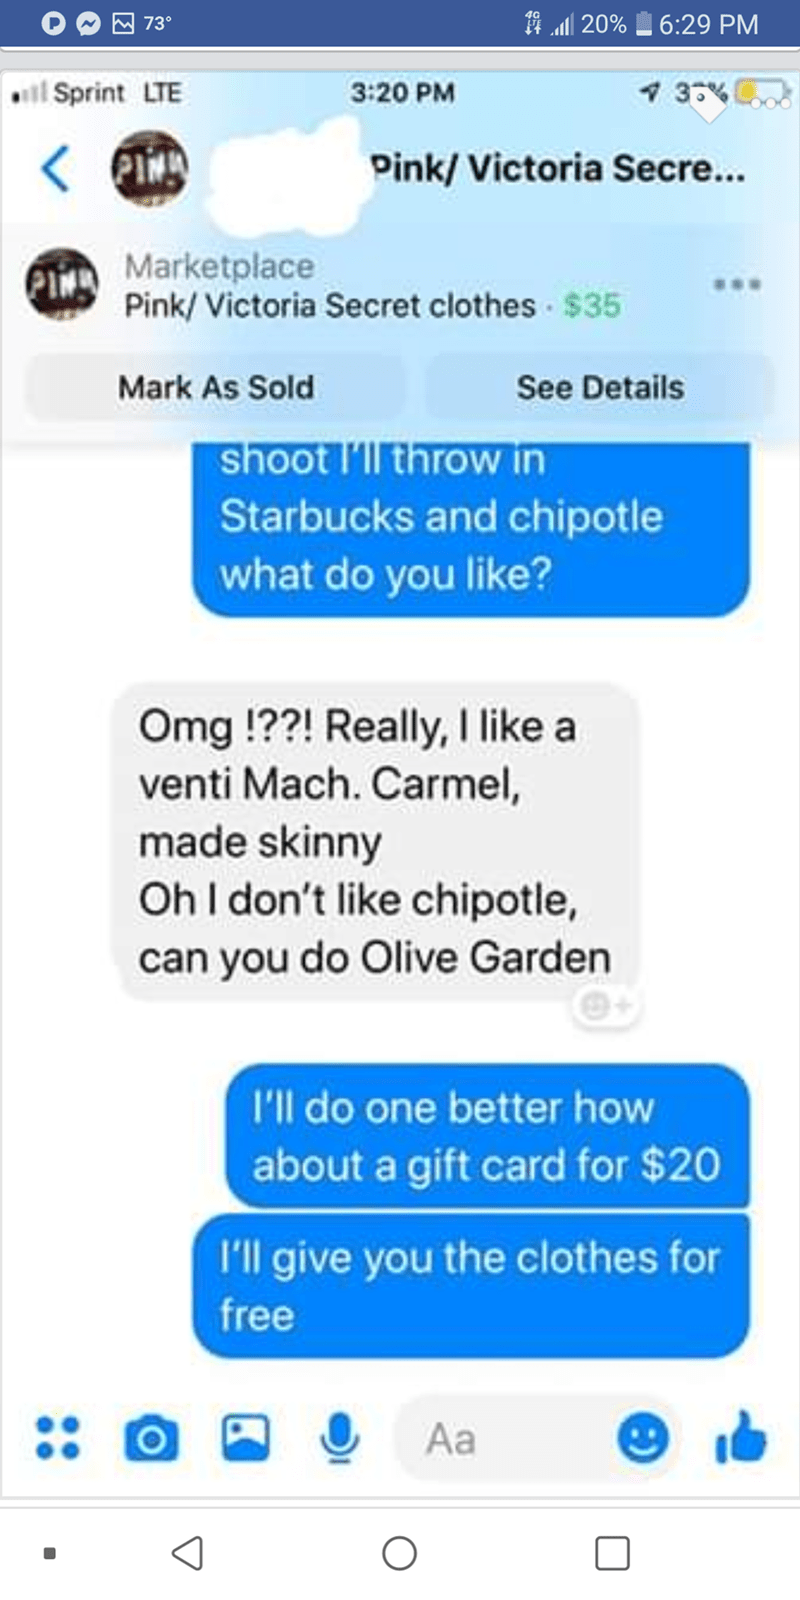 Text - 19 20% 6:29 PM 73° 3% i Sprint LTE 3:20 PM < lA Pink/Victoria Secre... Marketplace Pink/Victoria Secret clothes $35 Mark As Sold See Details shoot l'llthrow in Starbucks and chipotle what do you like? Omg !??! Really, I like a venti Mach. Carmel, made skinny OhI don't like chipotle, can you do Olive Garden I'll do one better how about a gift card for $20 I'll give you the clothes for free Aa